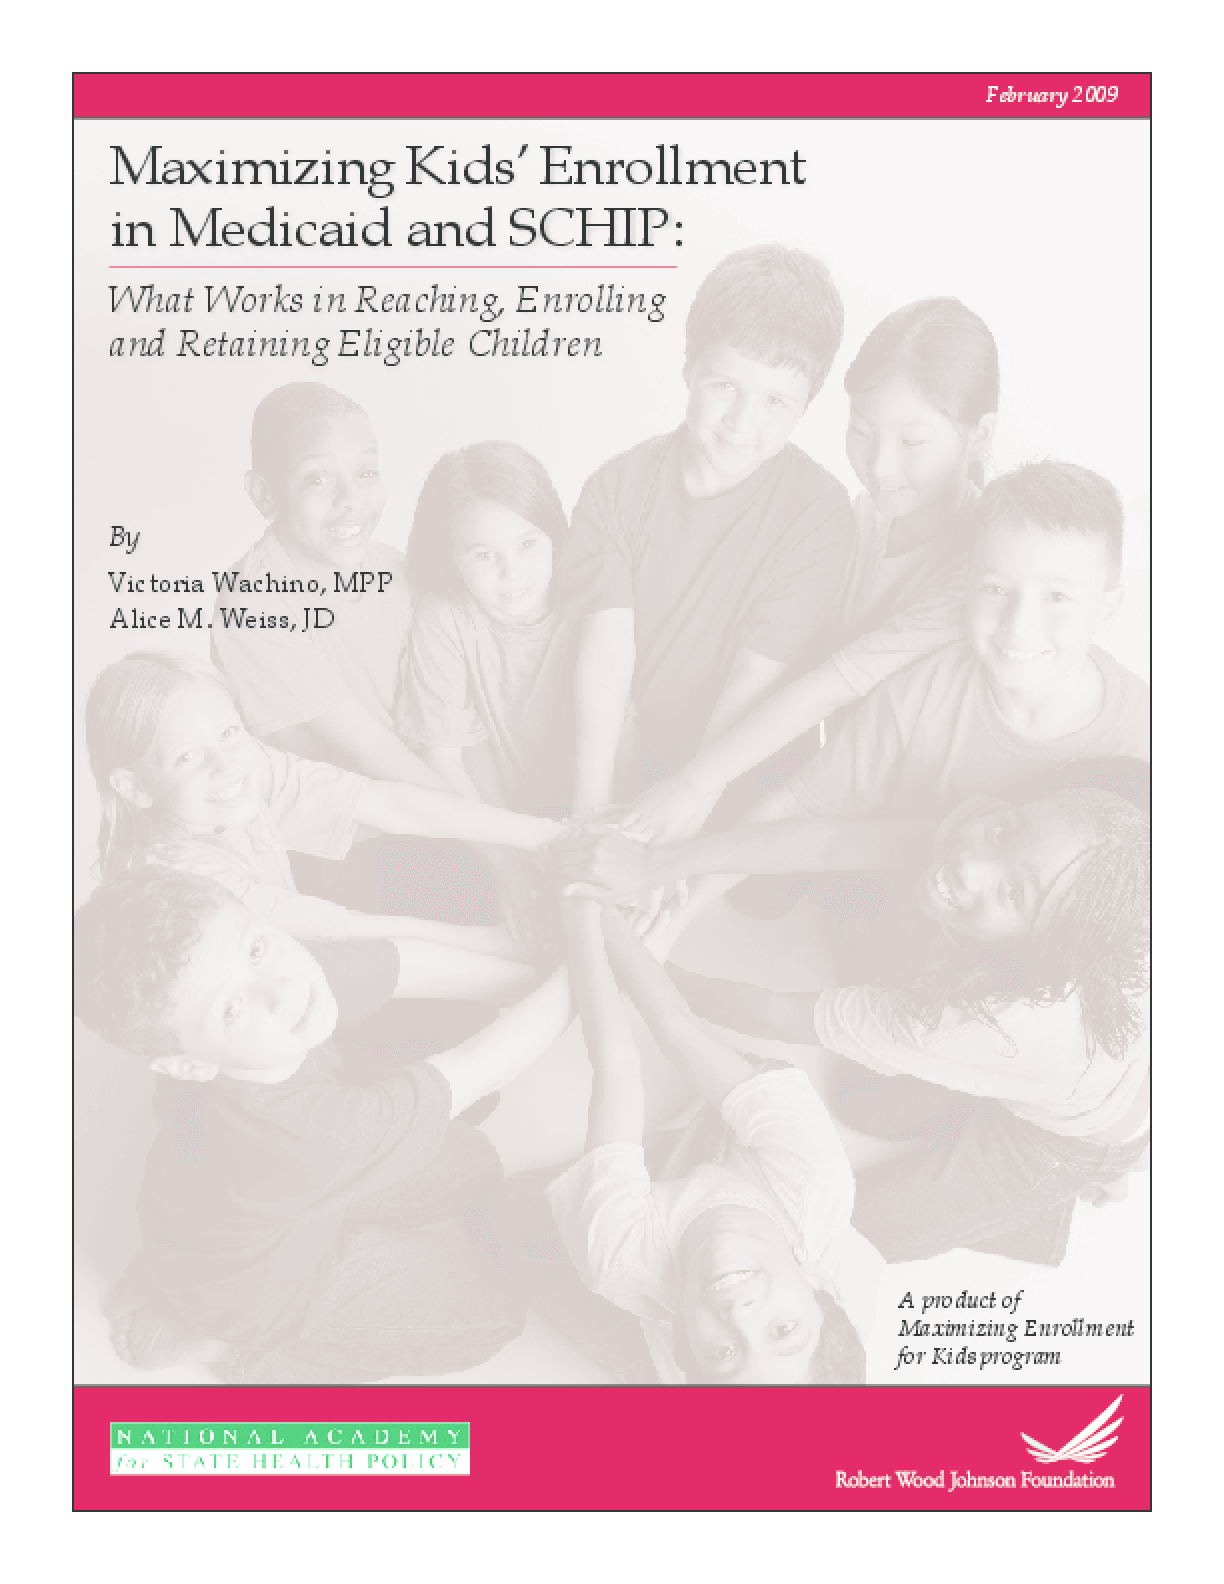 Maximizing Kids' Enrollment in Medicaid and SCHIP